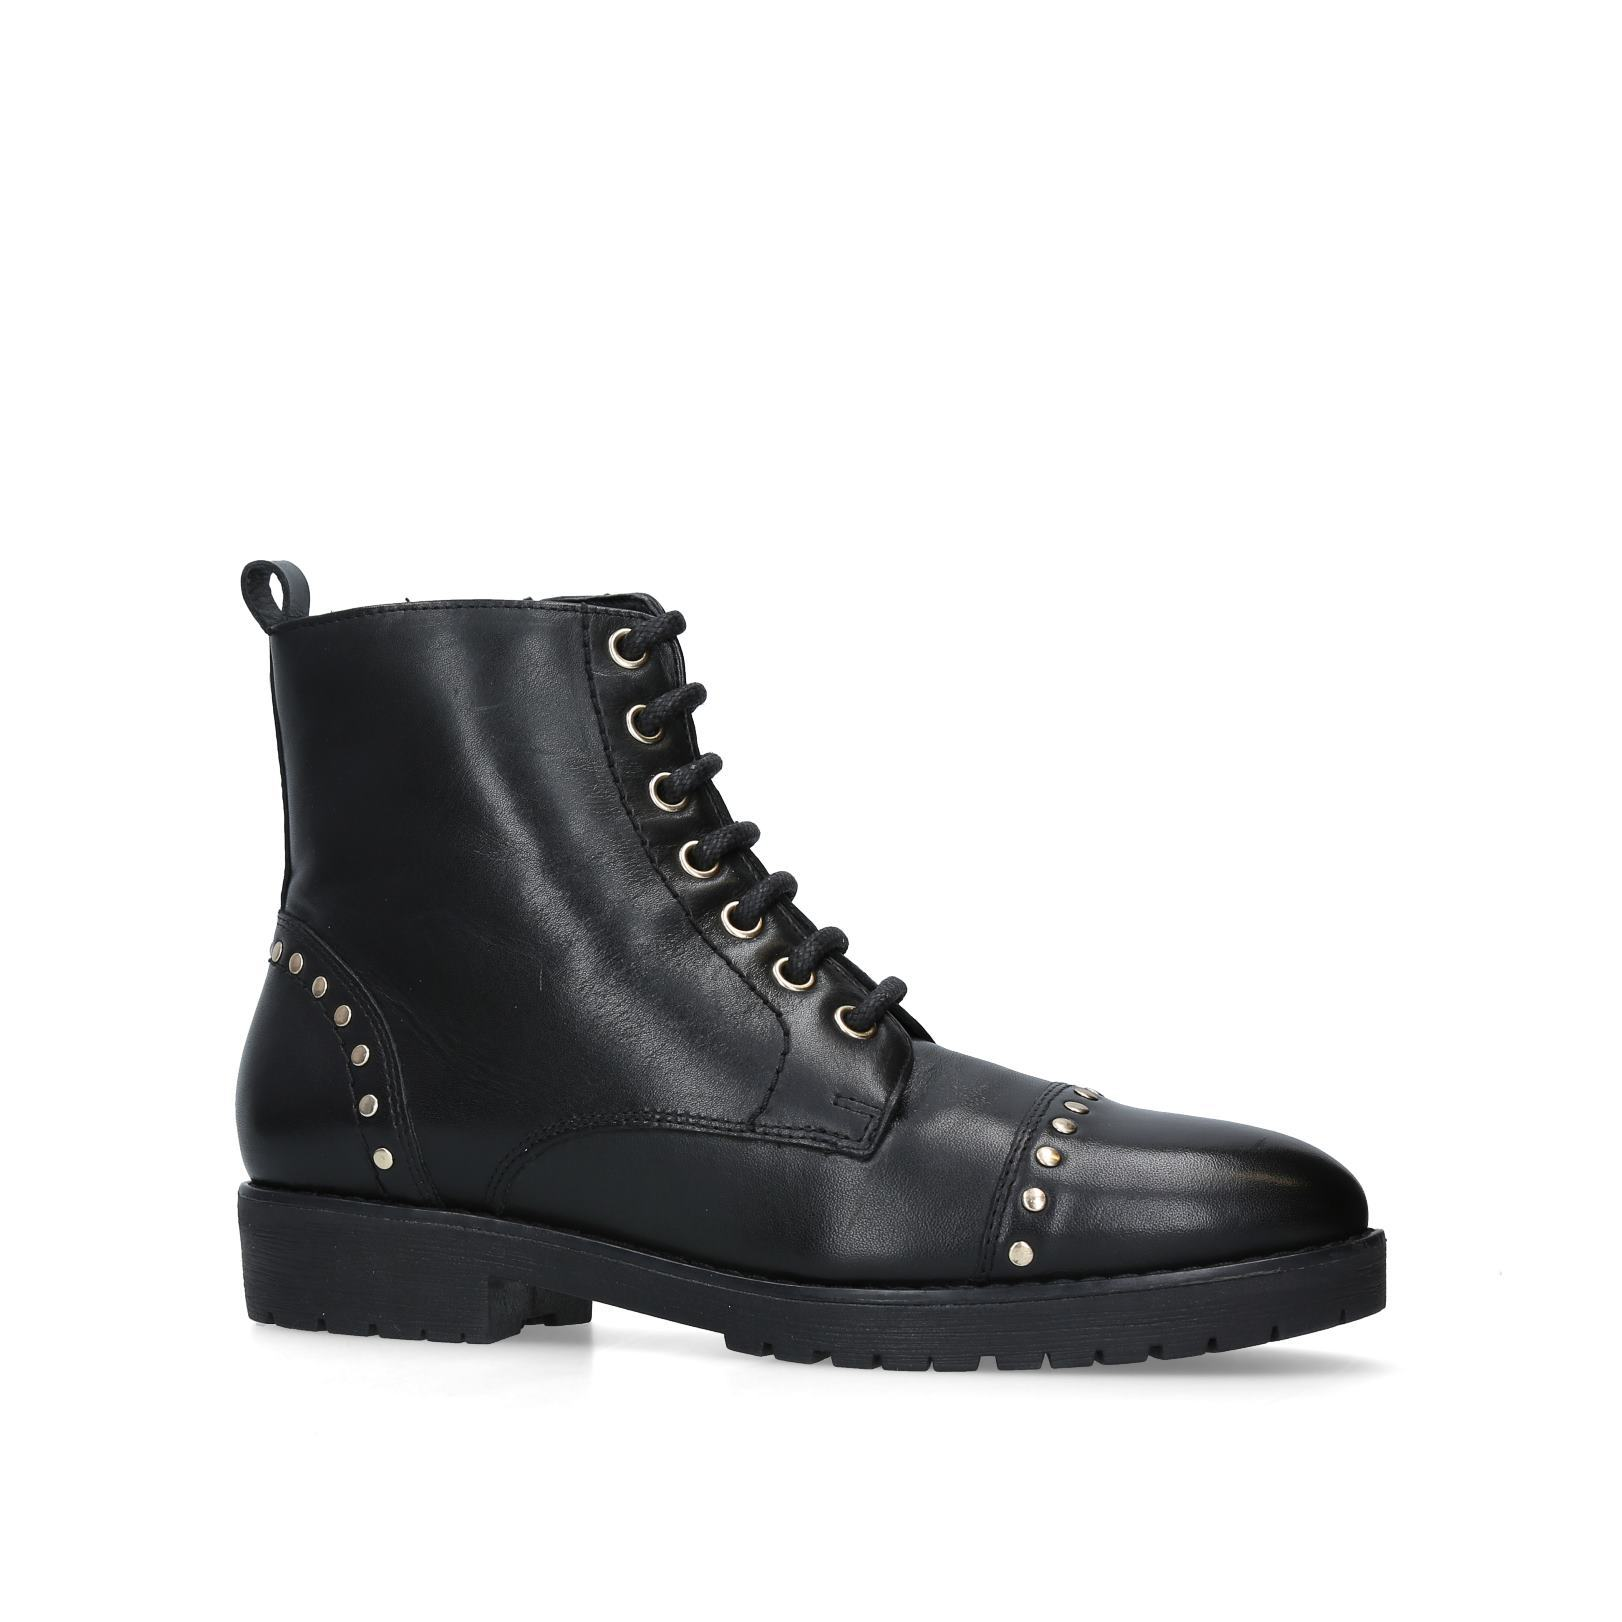 1dde1684be8 STEADY Steady Carvela Ankle Boots No Heel Black lace up boots biker boots  by CARVELA